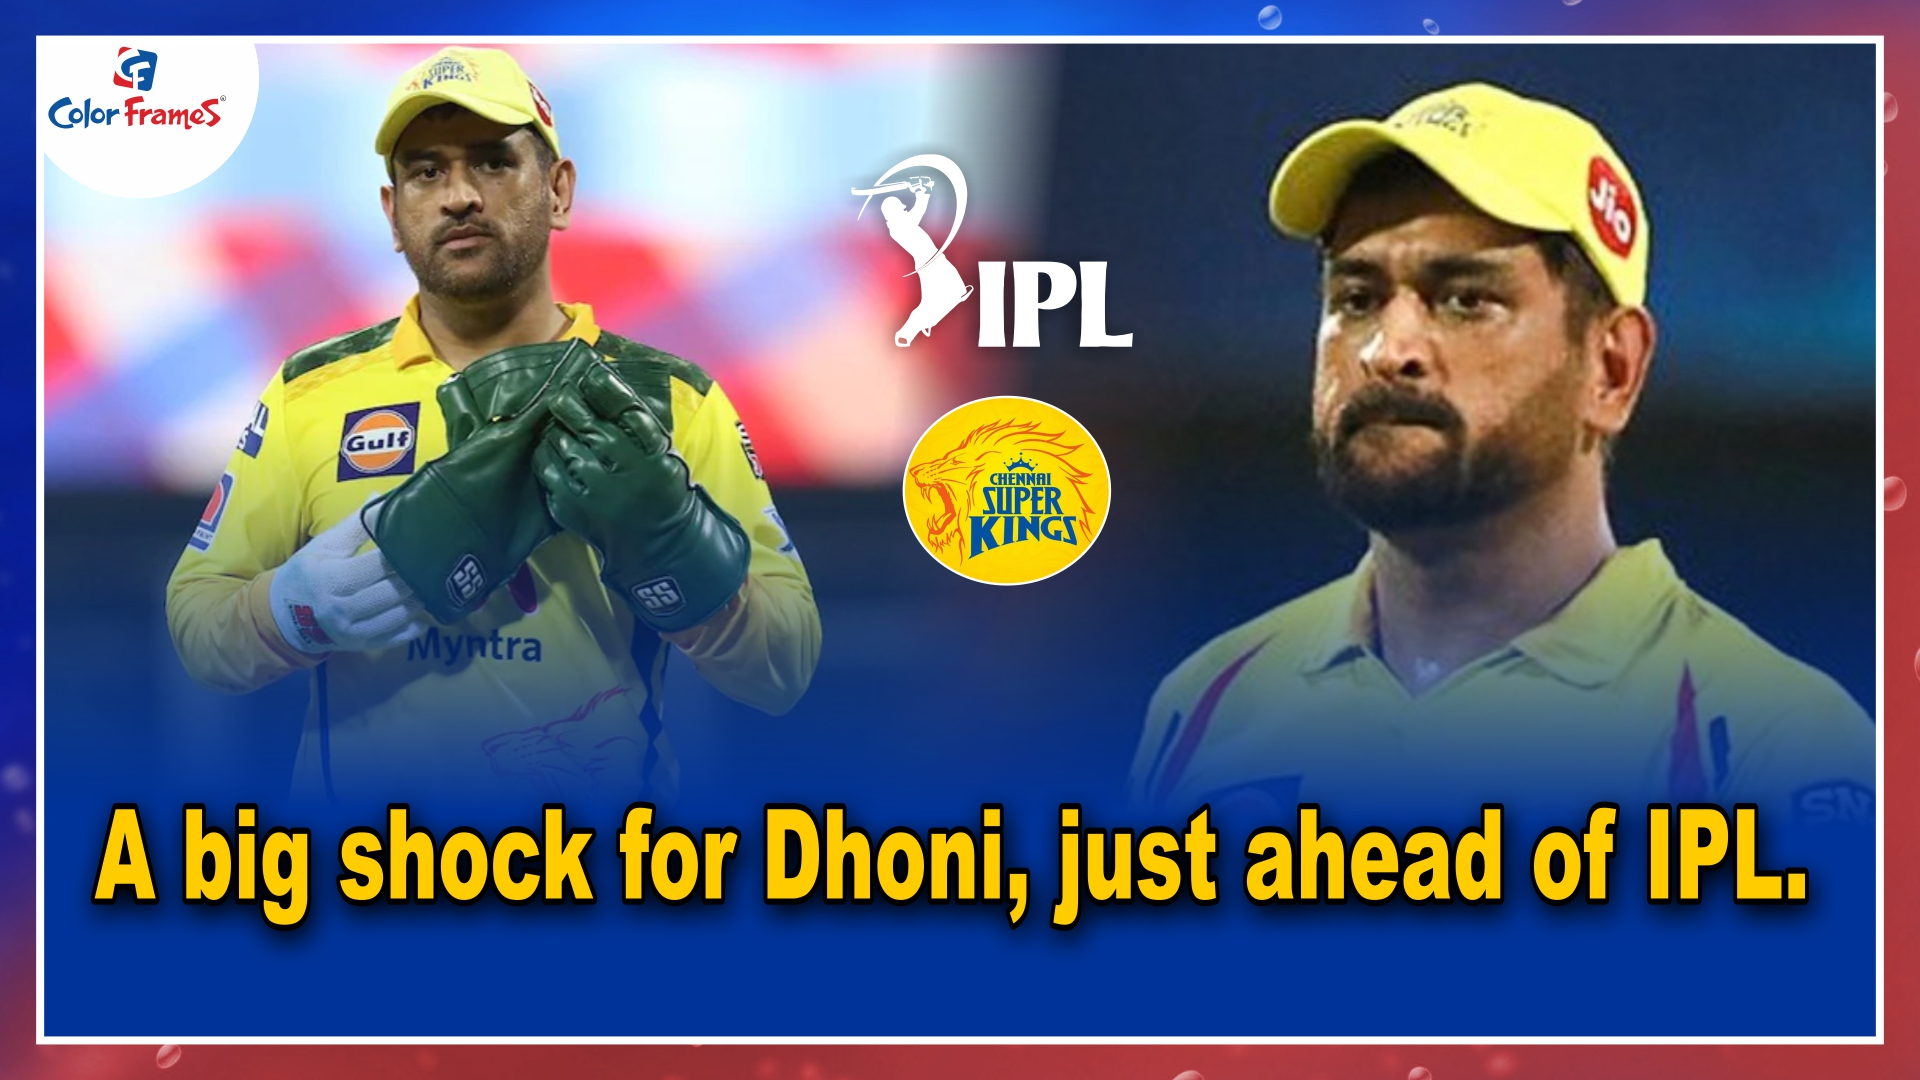 A big shock for Dhoni, just ahead of IPL.